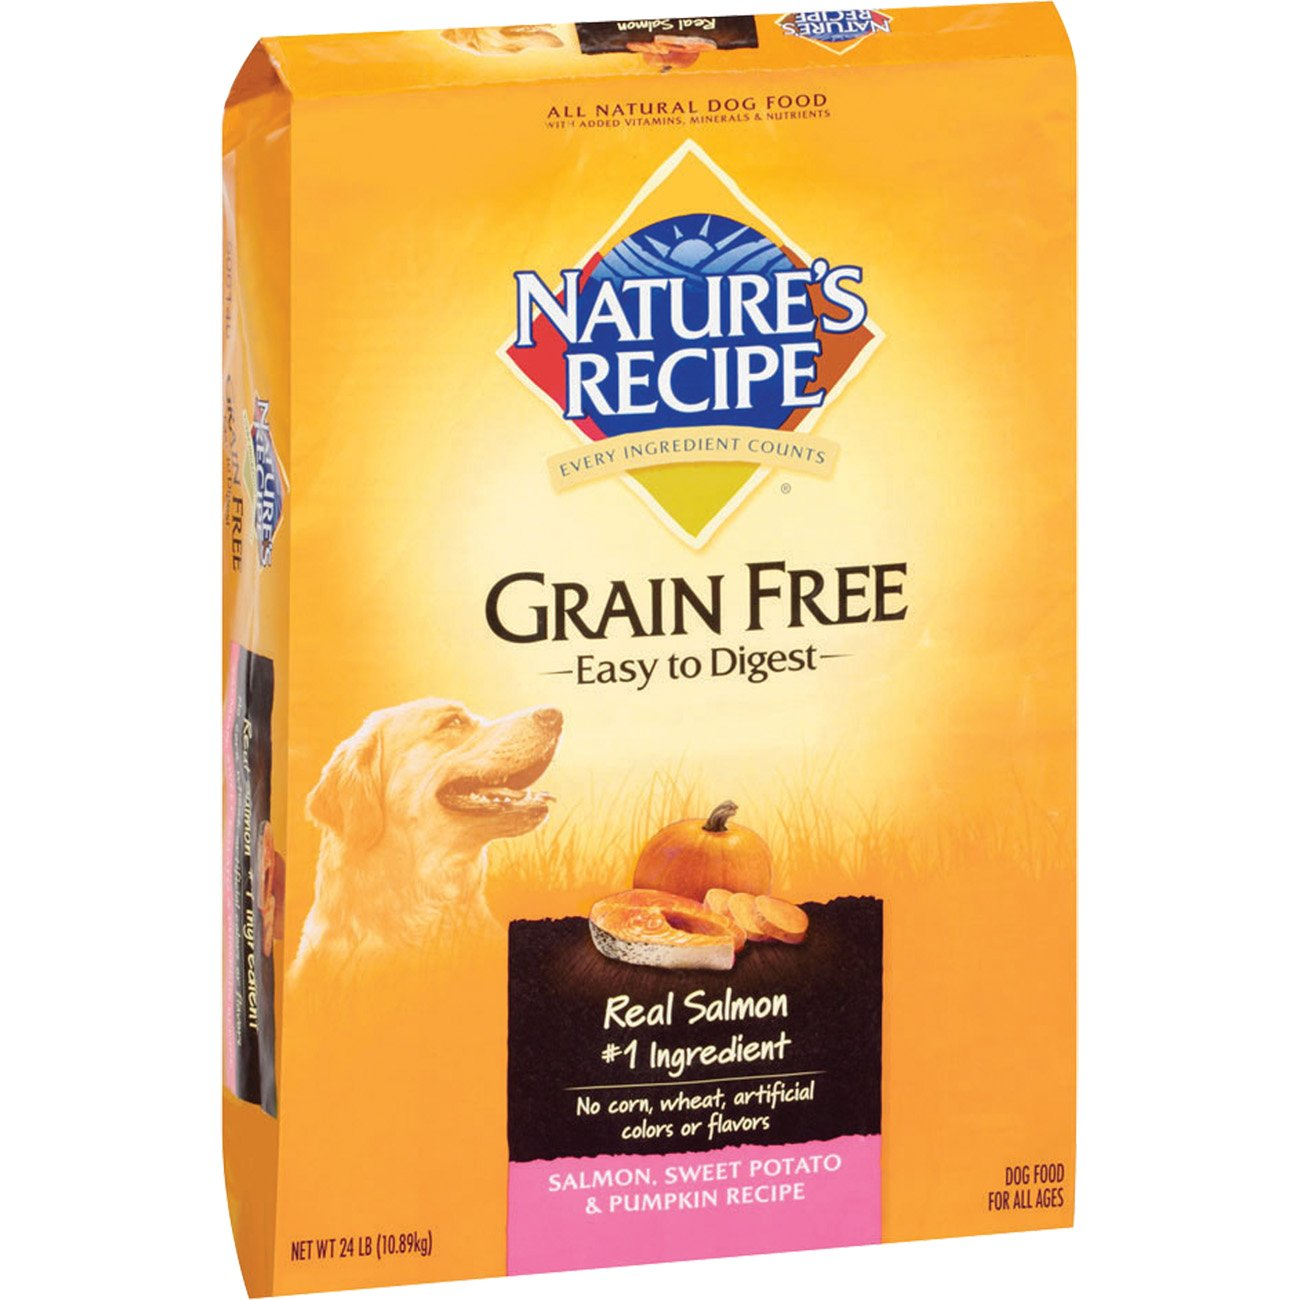 Grain Free Dog Food For Giant Breeds